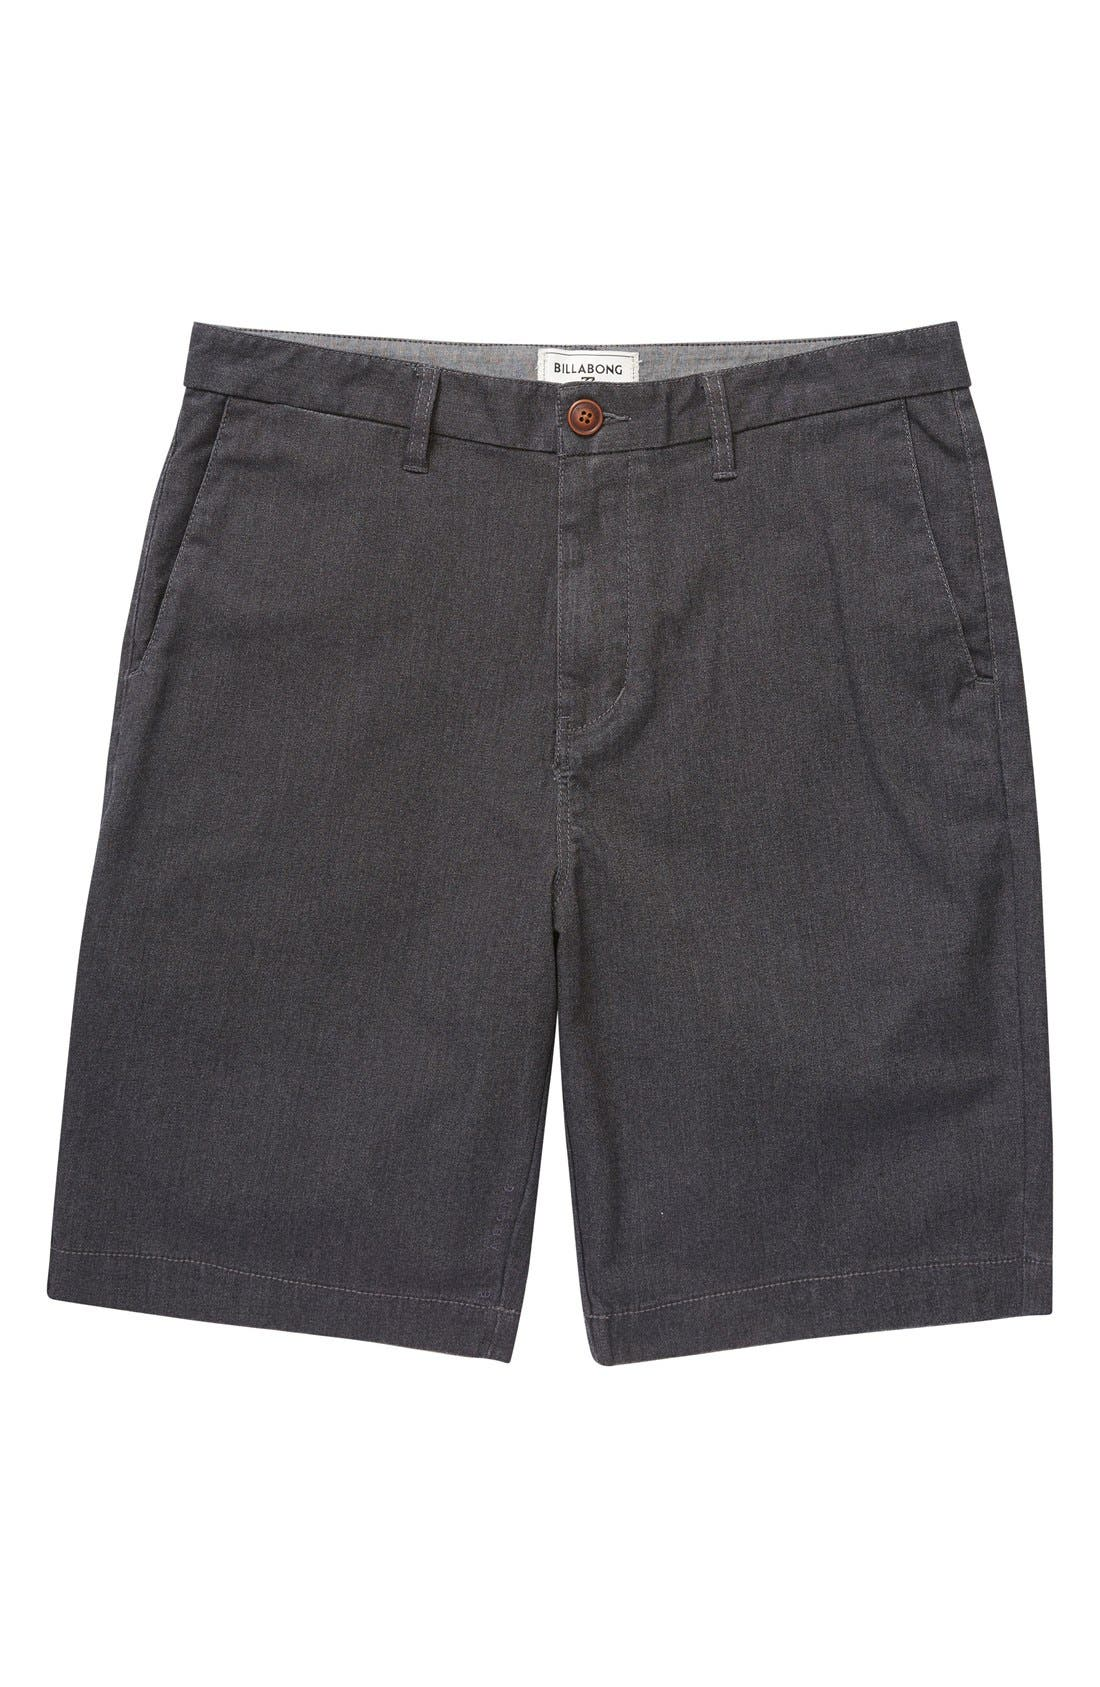 'Carter' Cotton Twill Shorts,                             Main thumbnail 1, color,